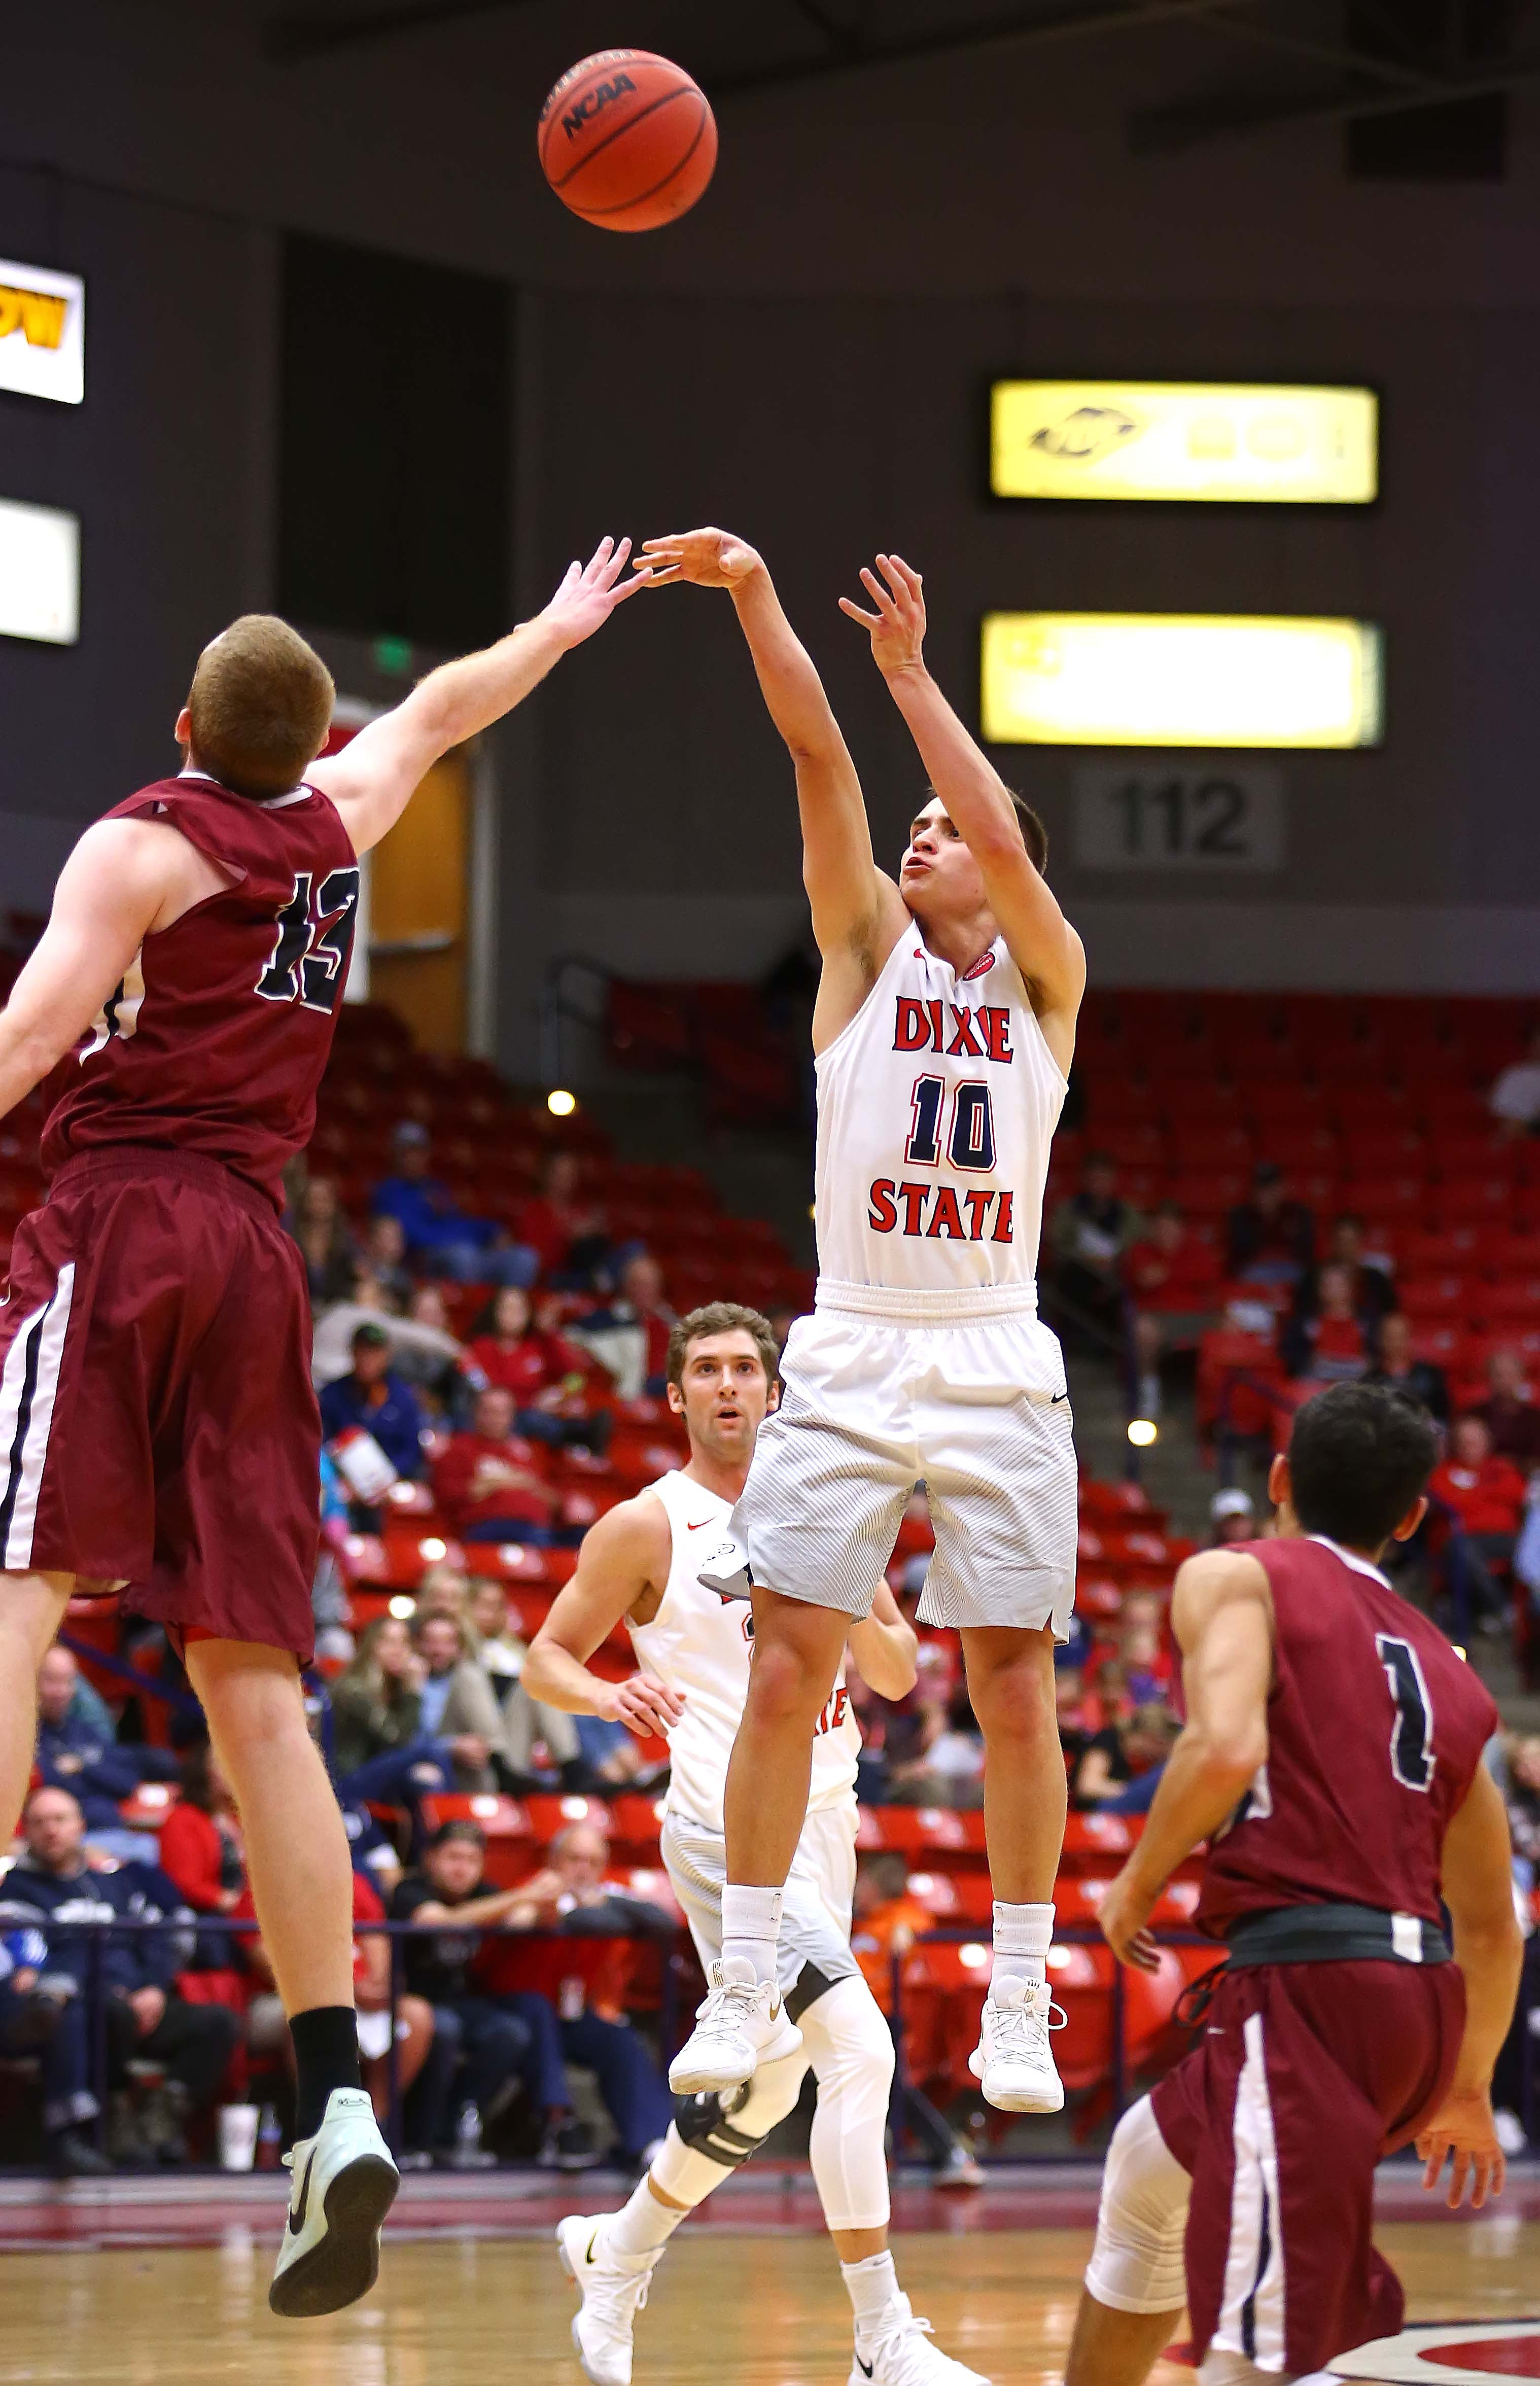 dixie state takes massive win streak into friday's ncaa west